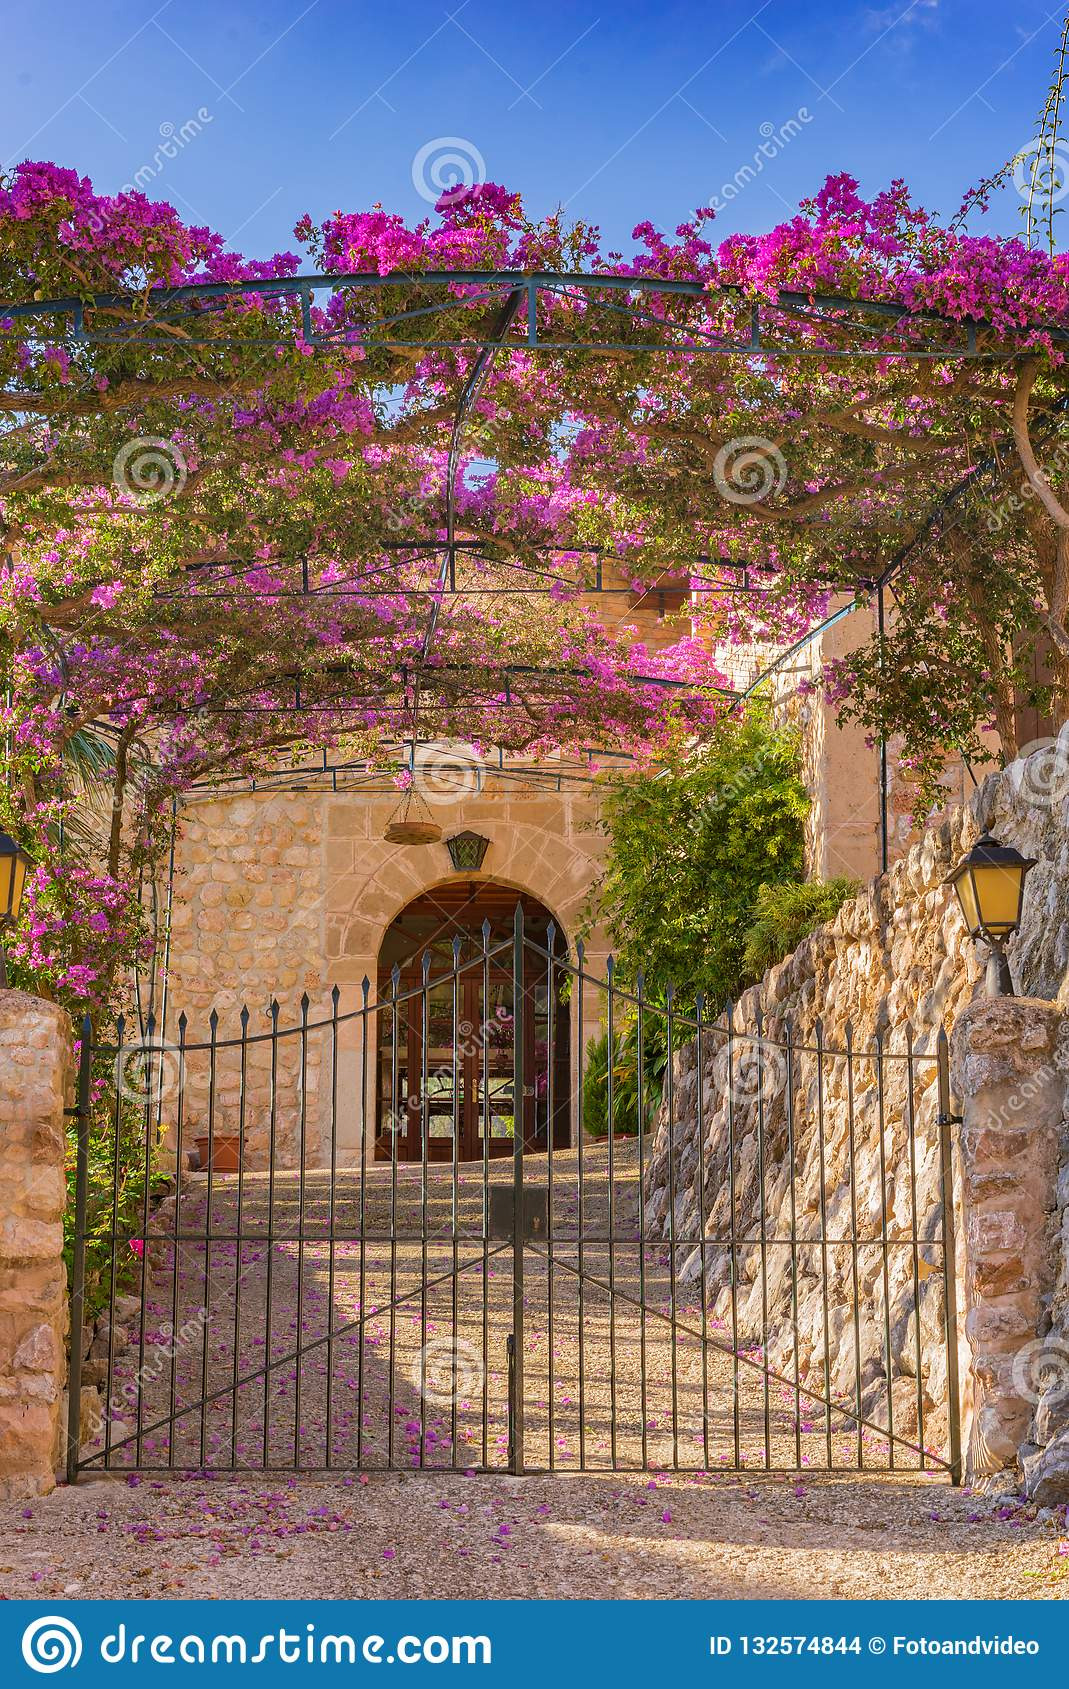 Beautiful Gates for Homes Luxury Entrance Metal Gate with Blooming Bougainvillea Plant